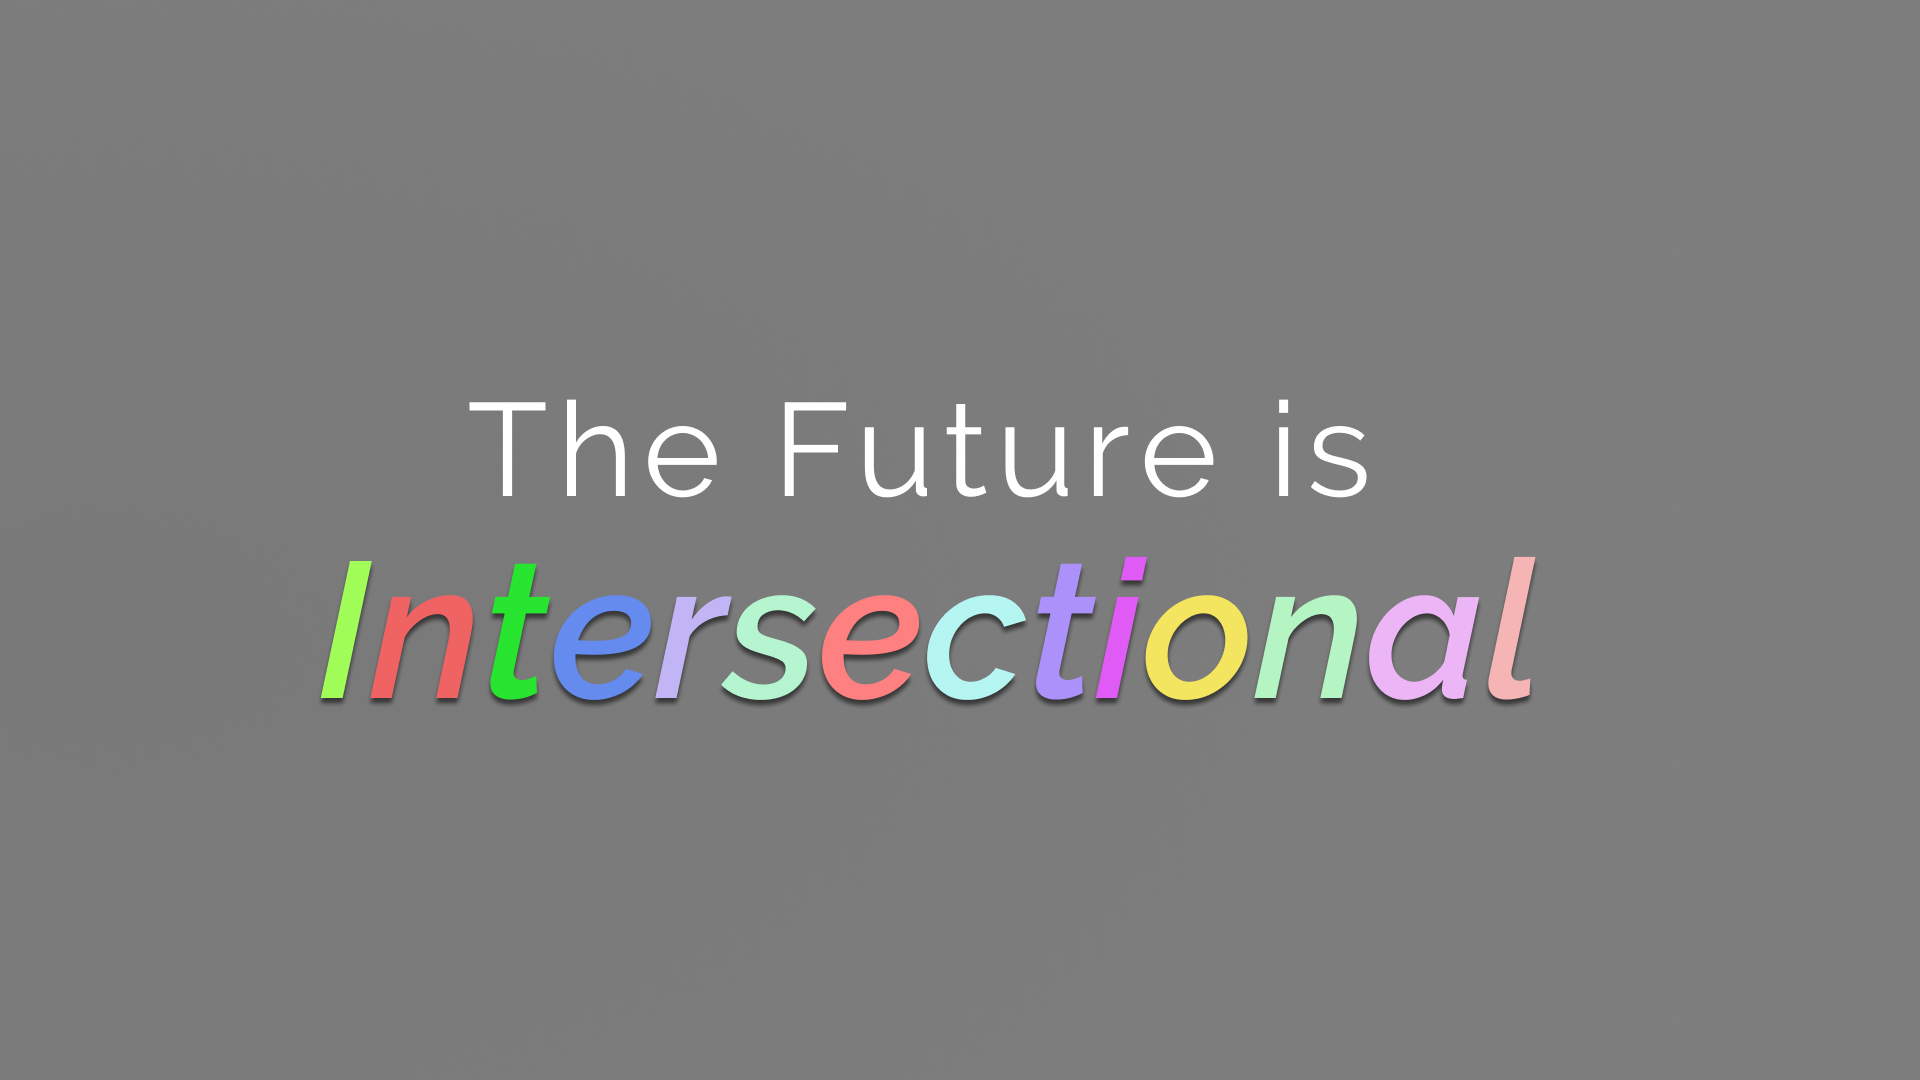 Wellness and Intersectionality